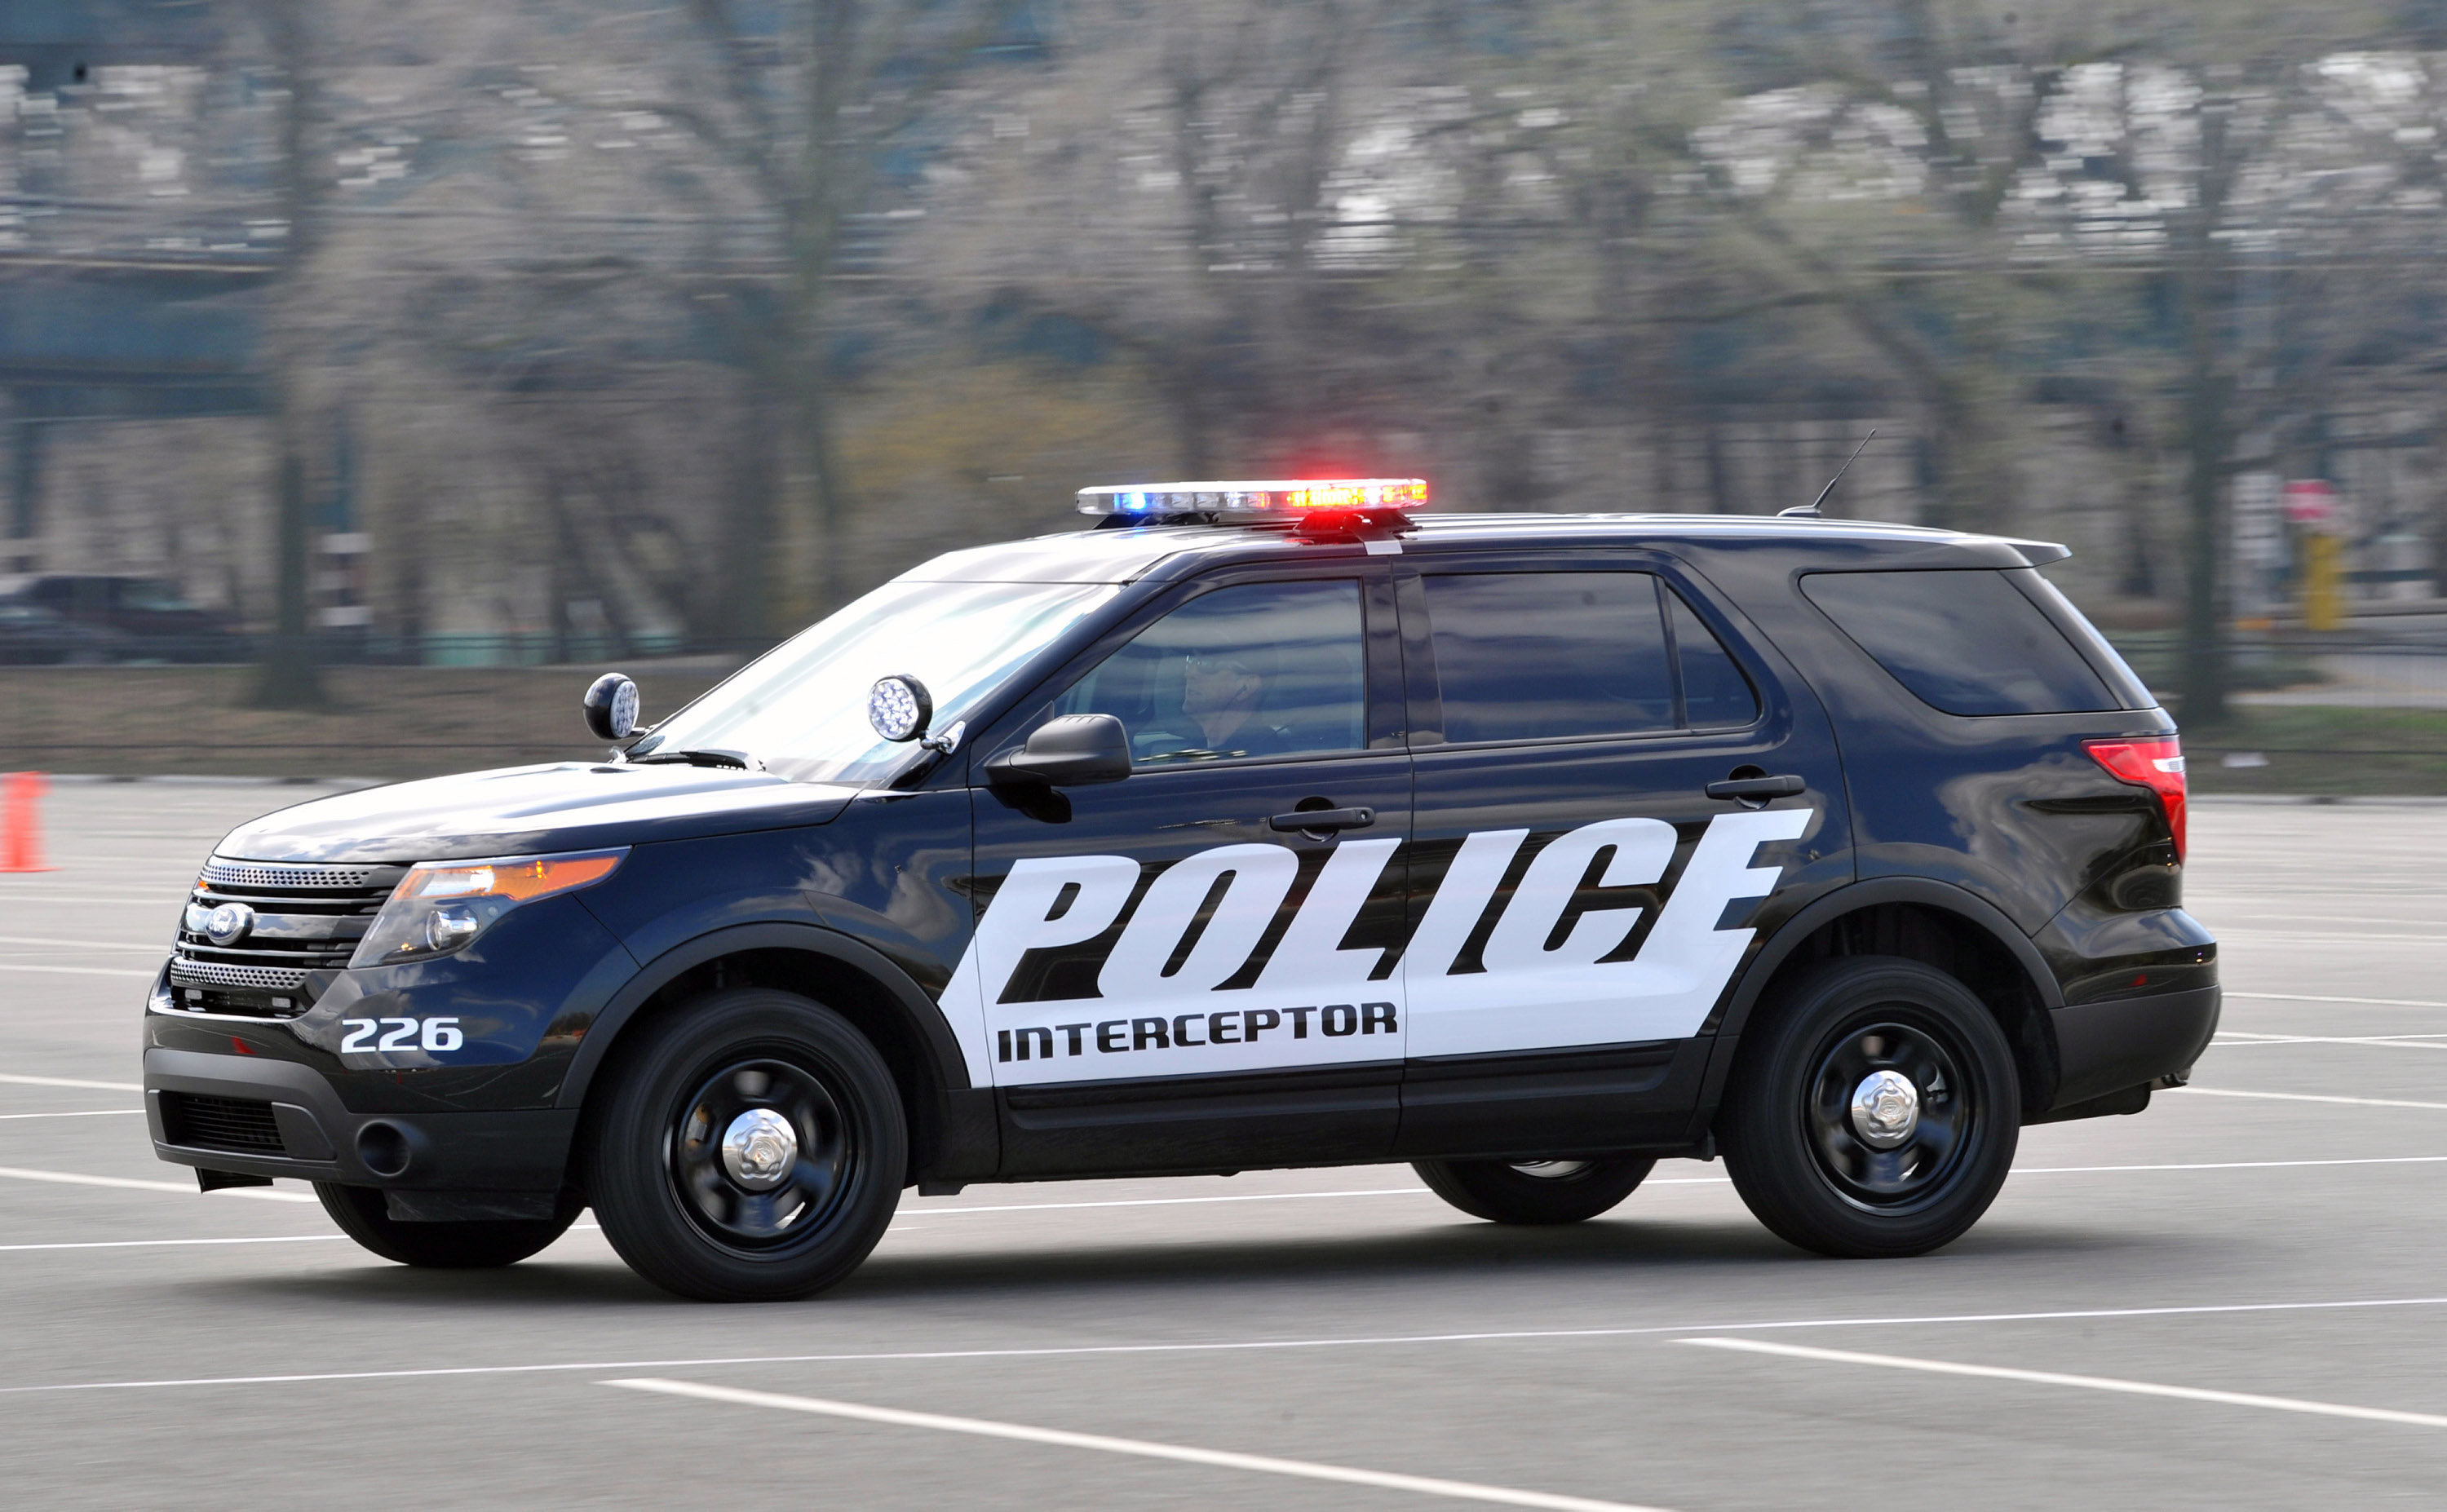 2011 Ford Police Interceptor Utility Vehicle | Car Photos Catalog 2018